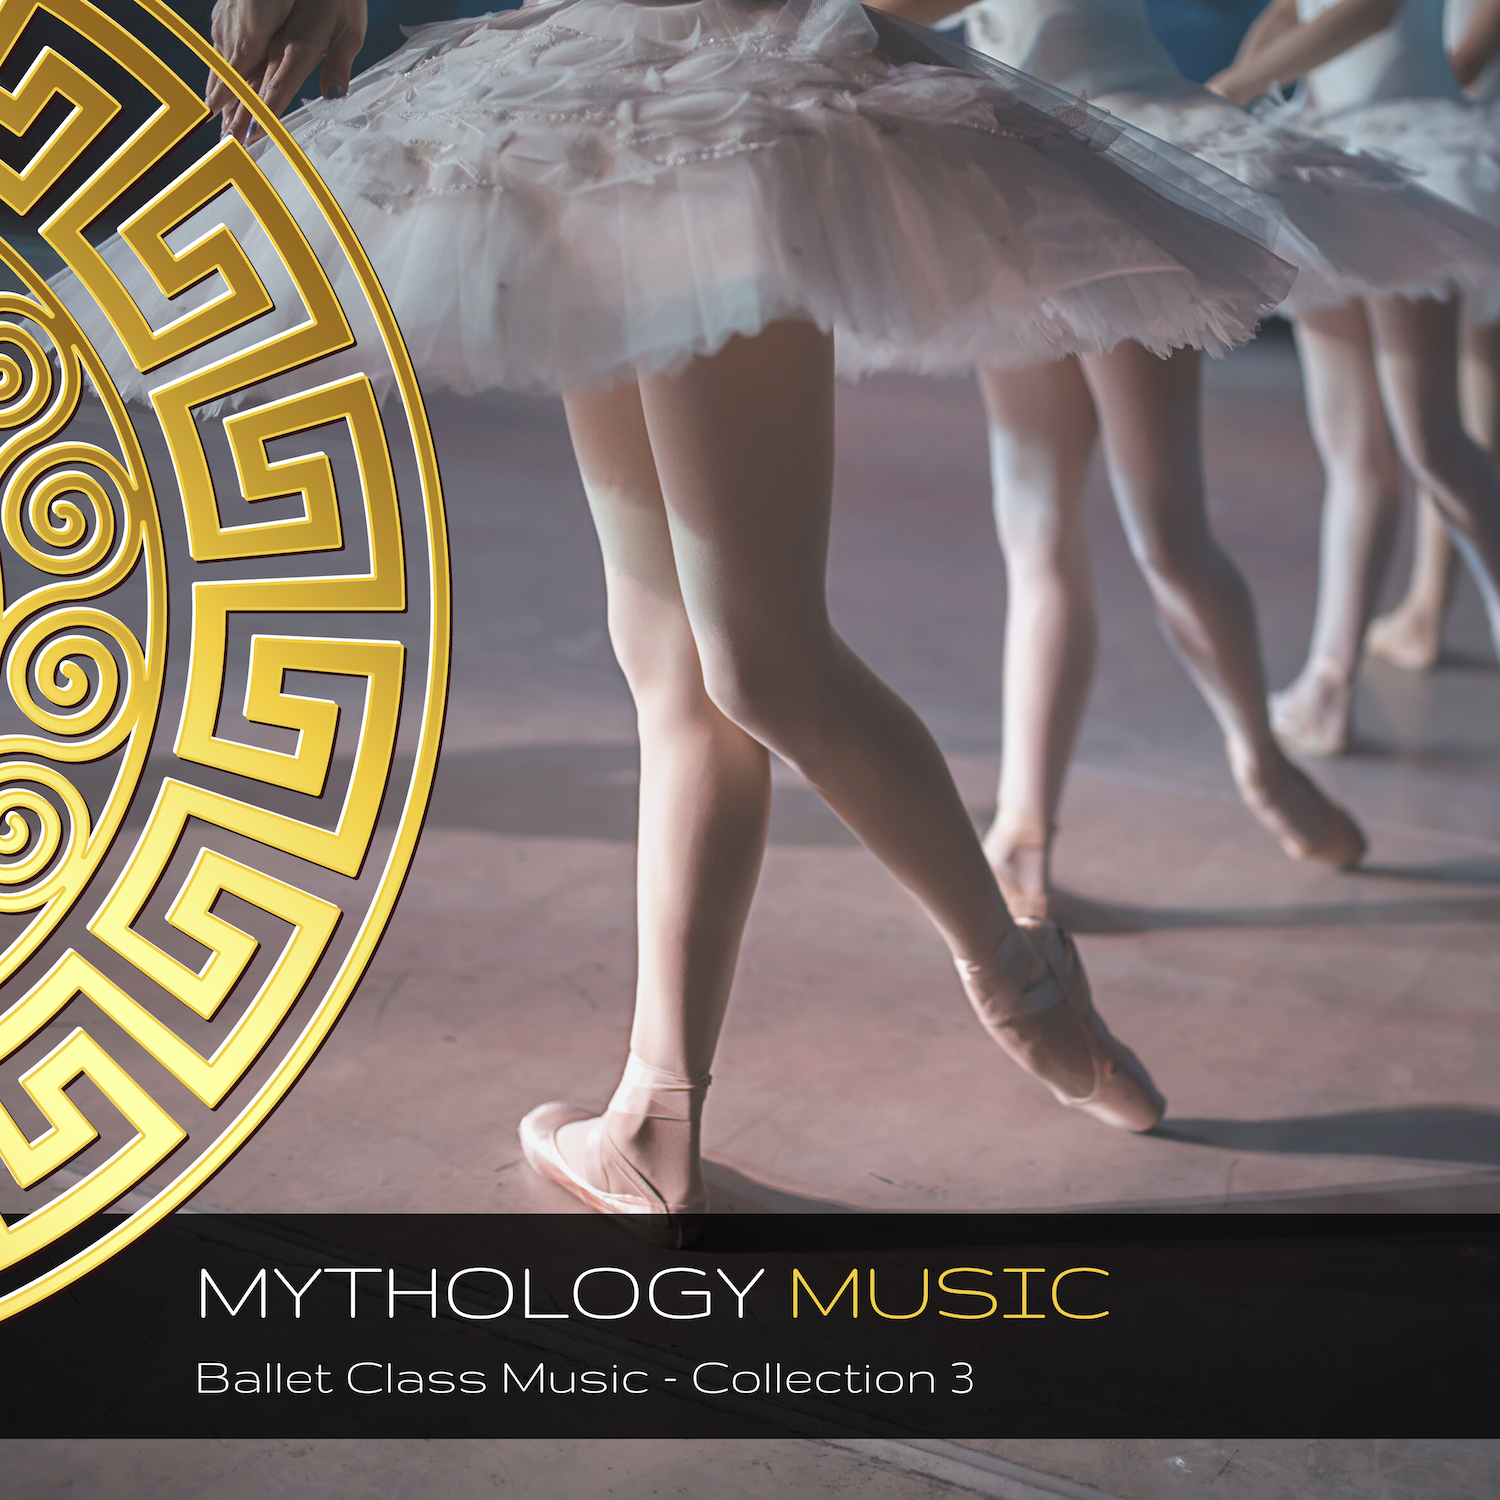 Mythology Music - Ballet Class Music Collection 3